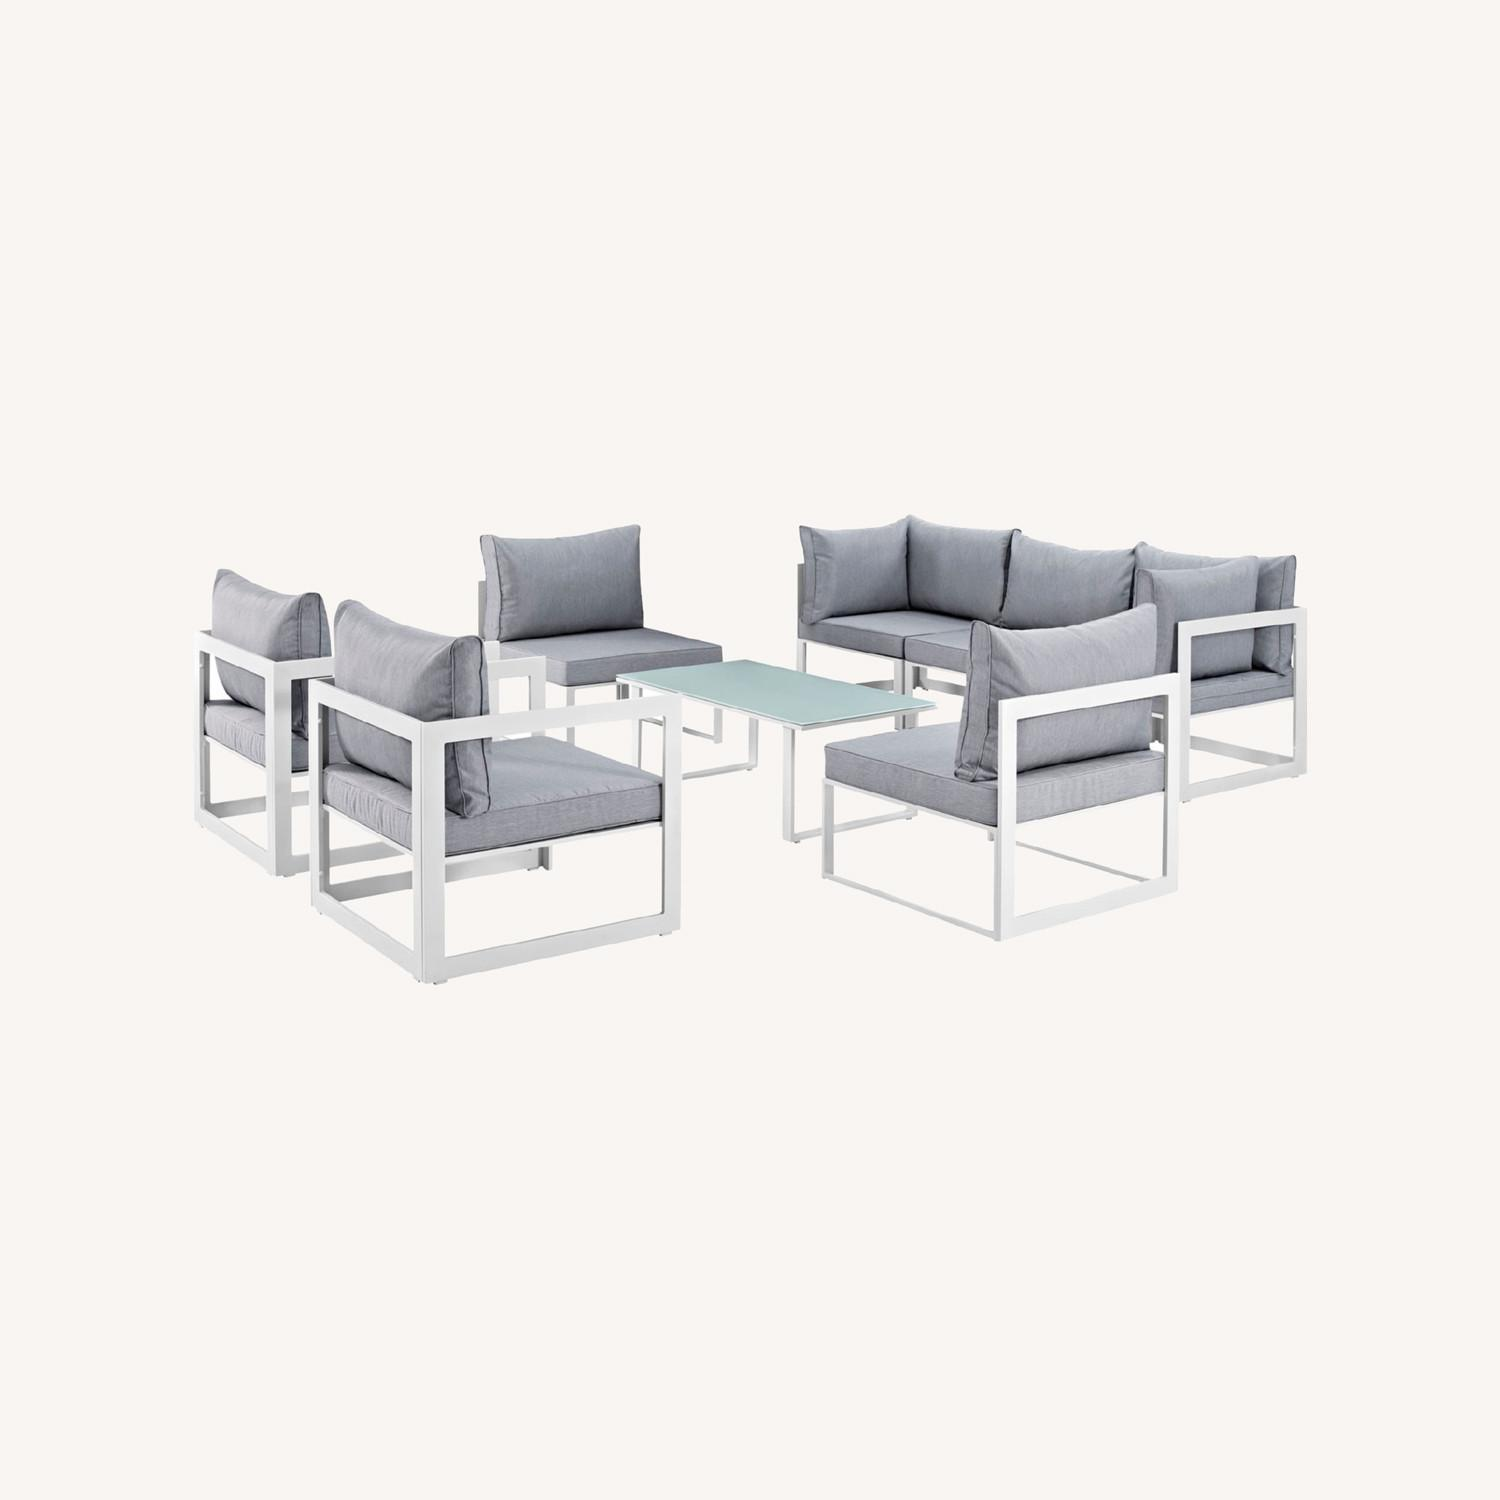 8-Piece Outdoor Sectional In Gray Fabric Finish - image-7